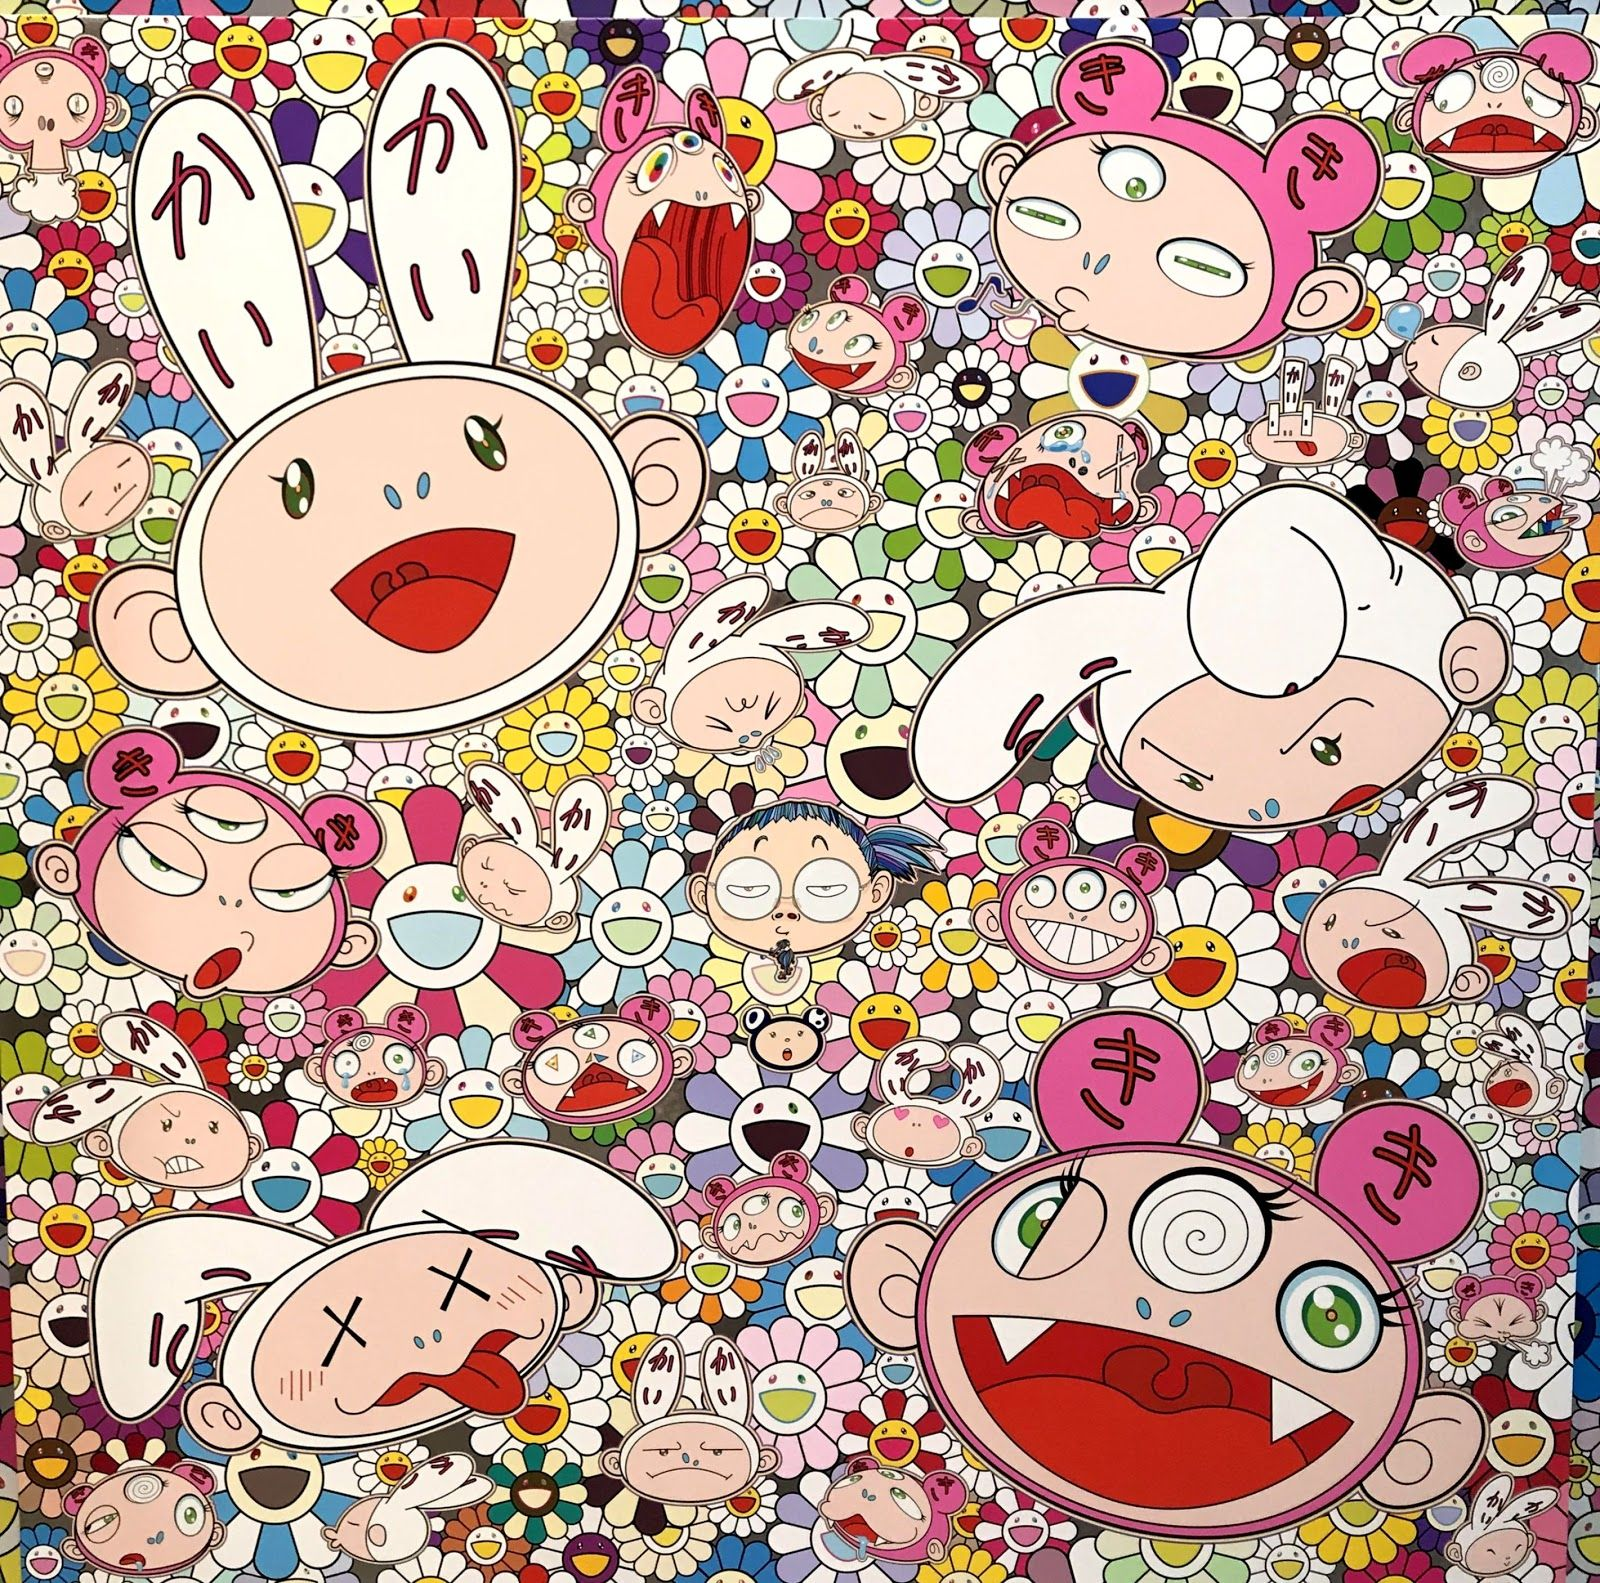 Takashi Murakami Off White Wallpapers On Wallpaperdog